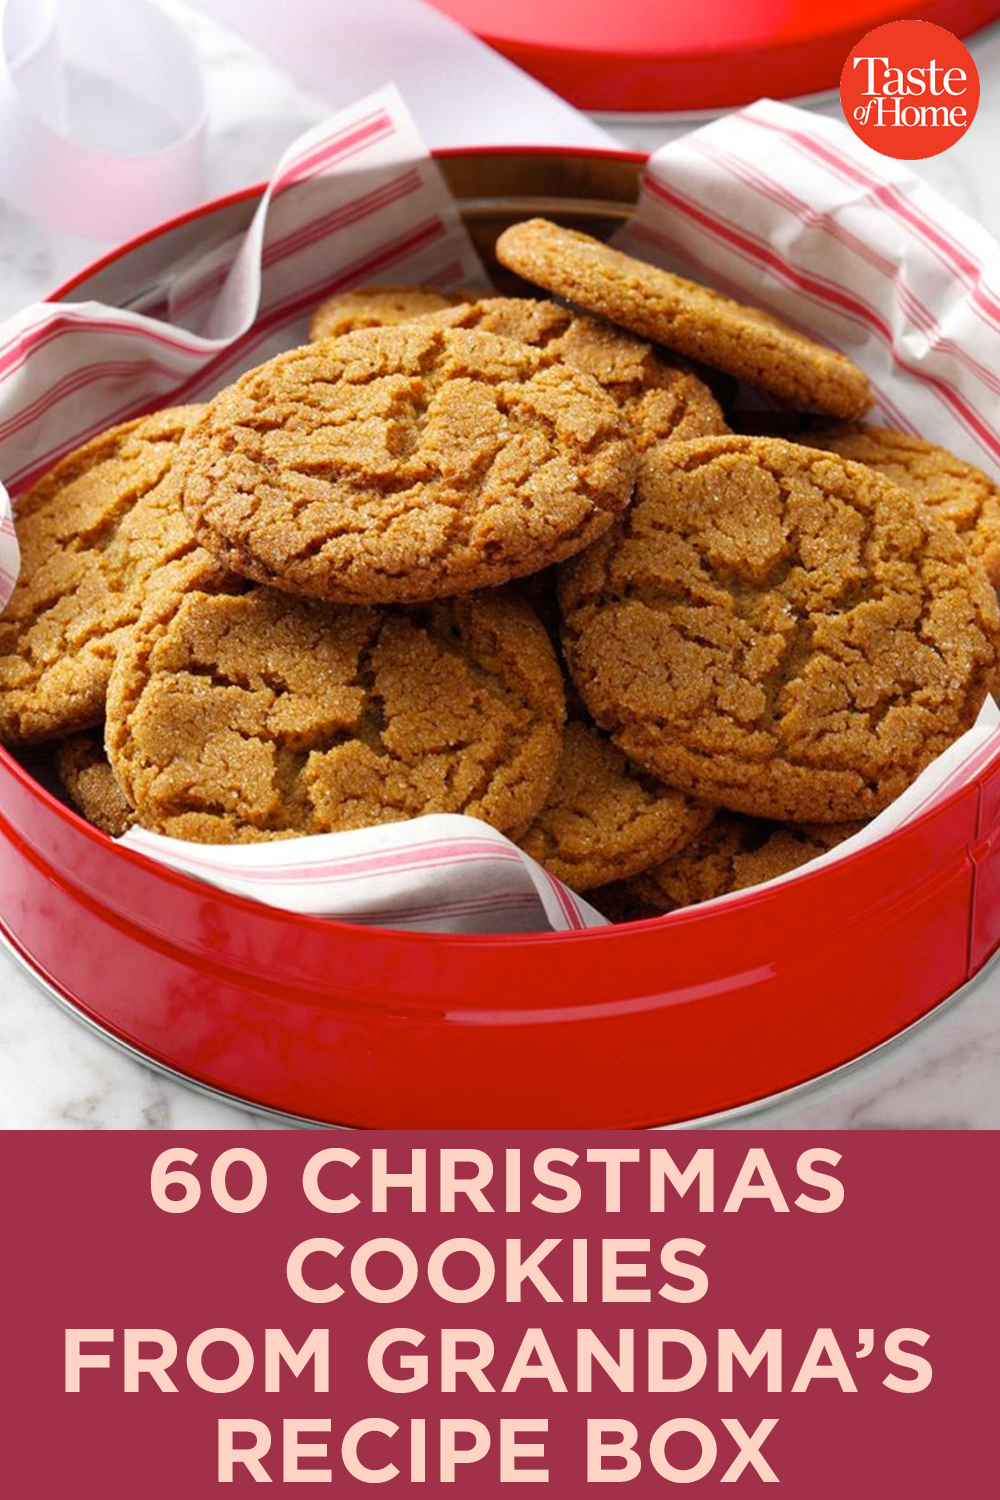 Christmas Cookie Recipes 2020 60 Christmas Cookies from Grandma's Recipe Box | Cookie recipes